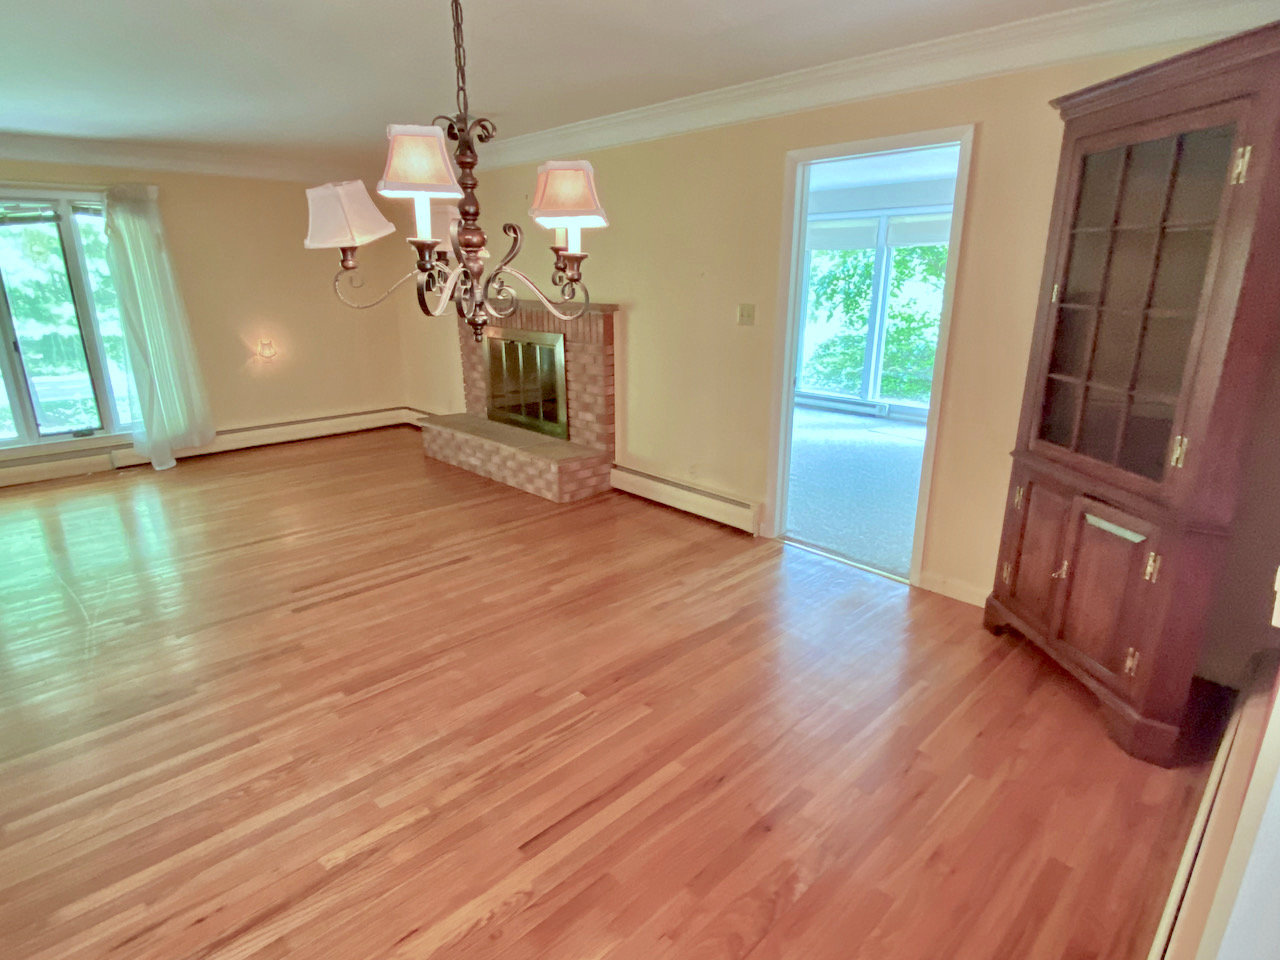 Image for 4 BR/2 BA Home on 1.1 +/- Acres in Western Loudoun County, VA